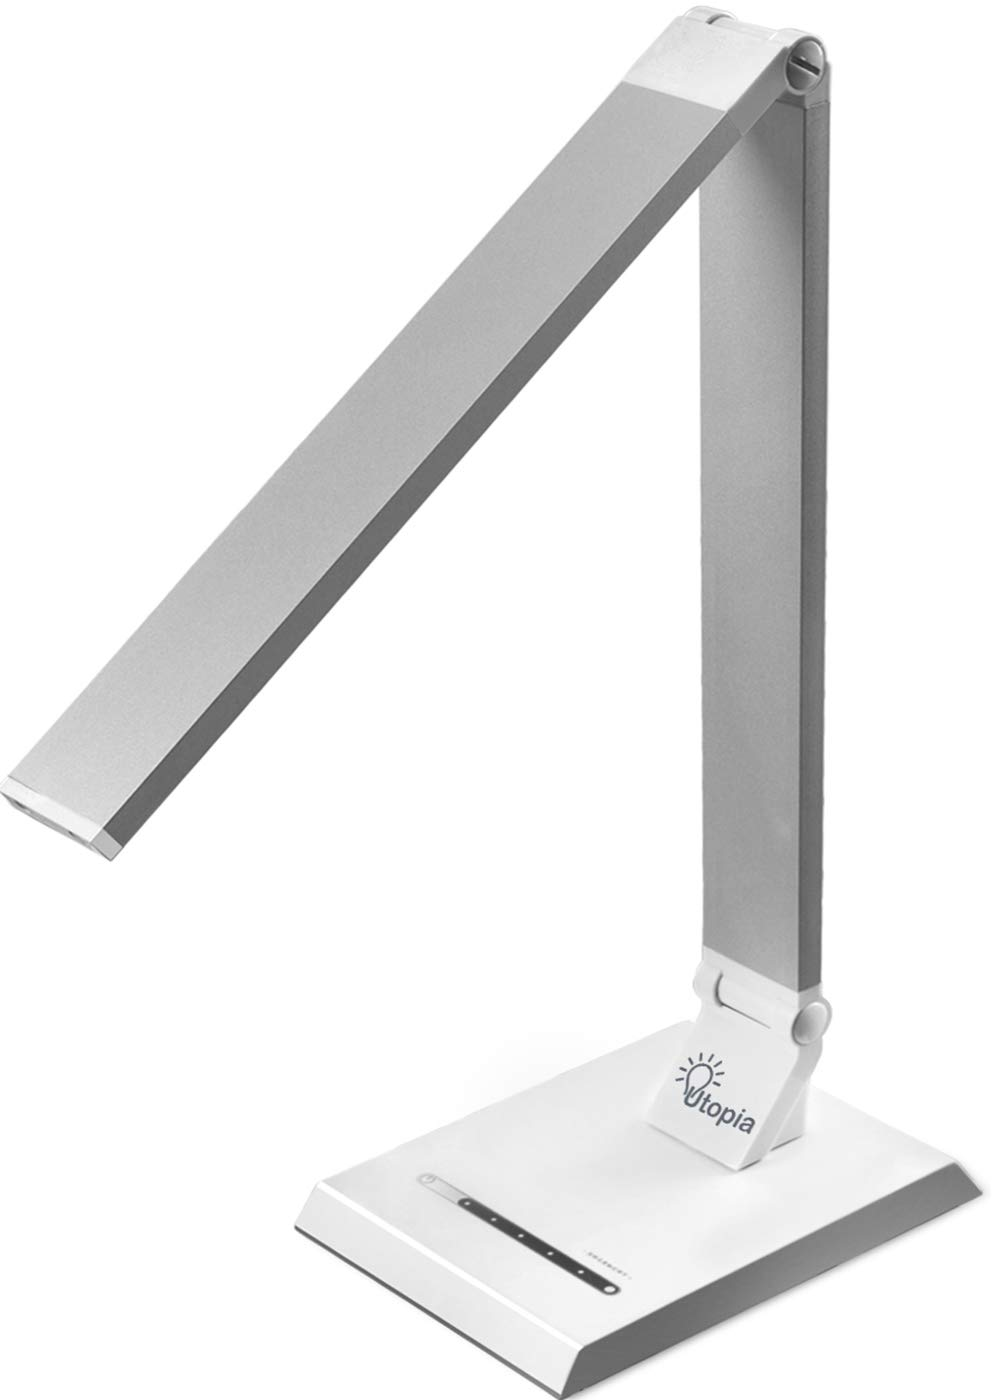 Utopia Home LED Desk/Table Lamp - Pack of 10 - Reading Lamp with USB Charging Port - Adjustable Brightness Levels with Touch Control - Rotatable Arm and Base by Utopia Home